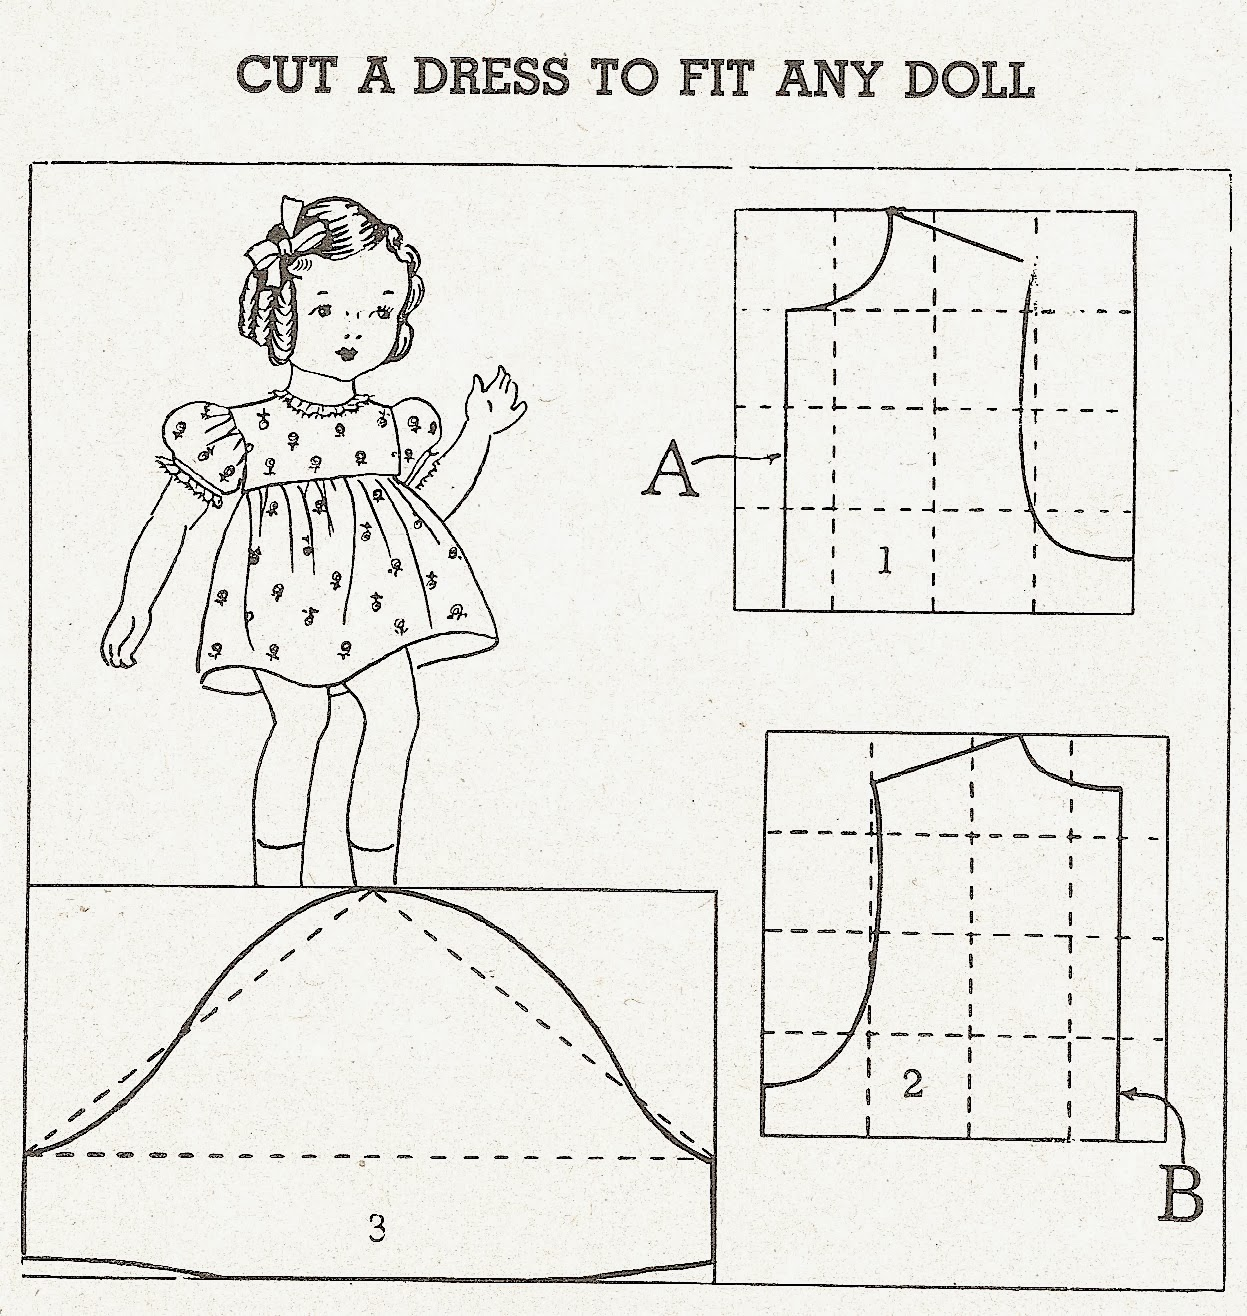 Sentimental Baby: Doll Dress, Slip & Panties Patterns